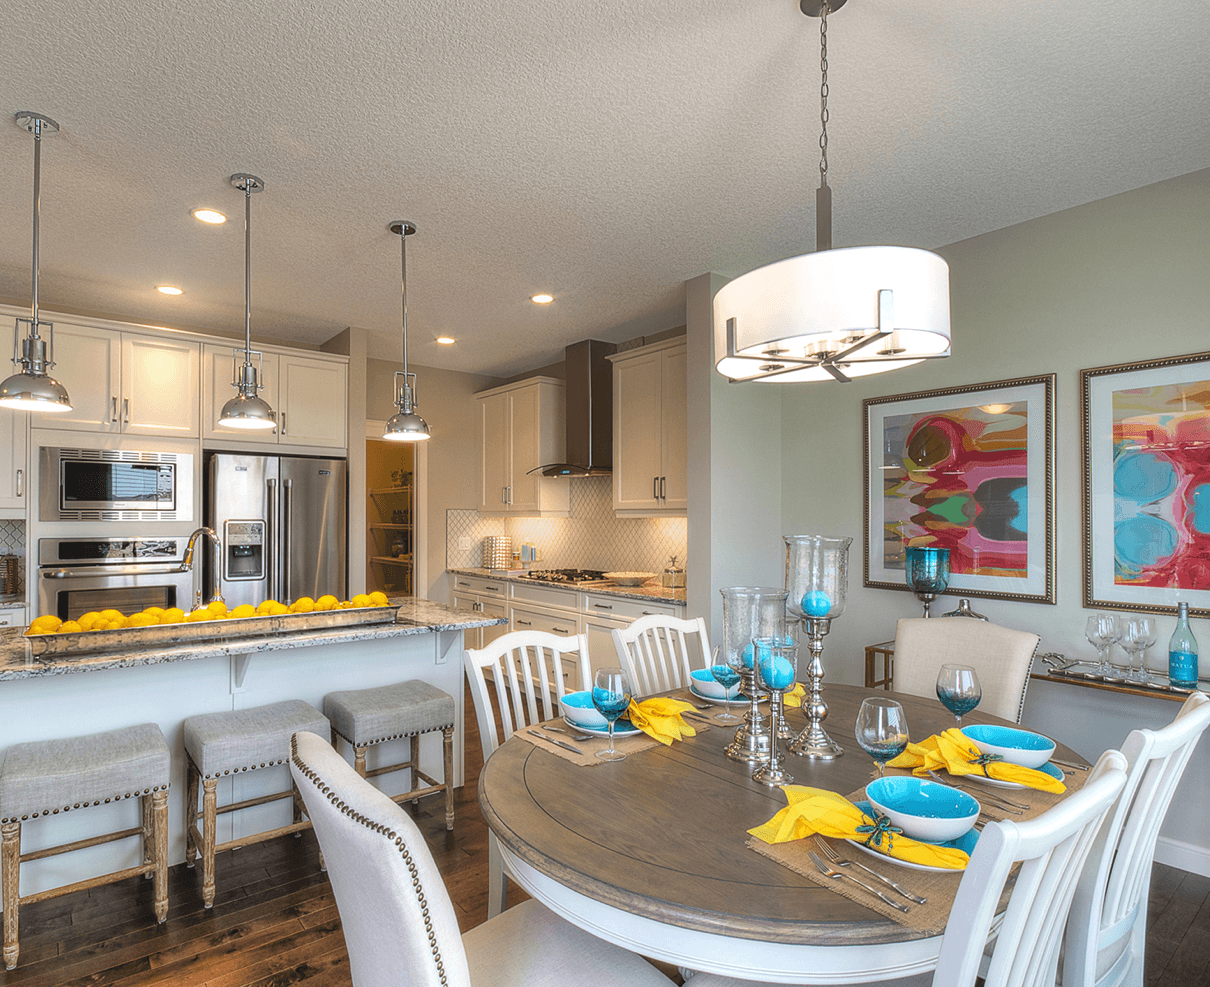 Your Furniture Shopping Sidekick: Kitchen and Dining Areas Main Image